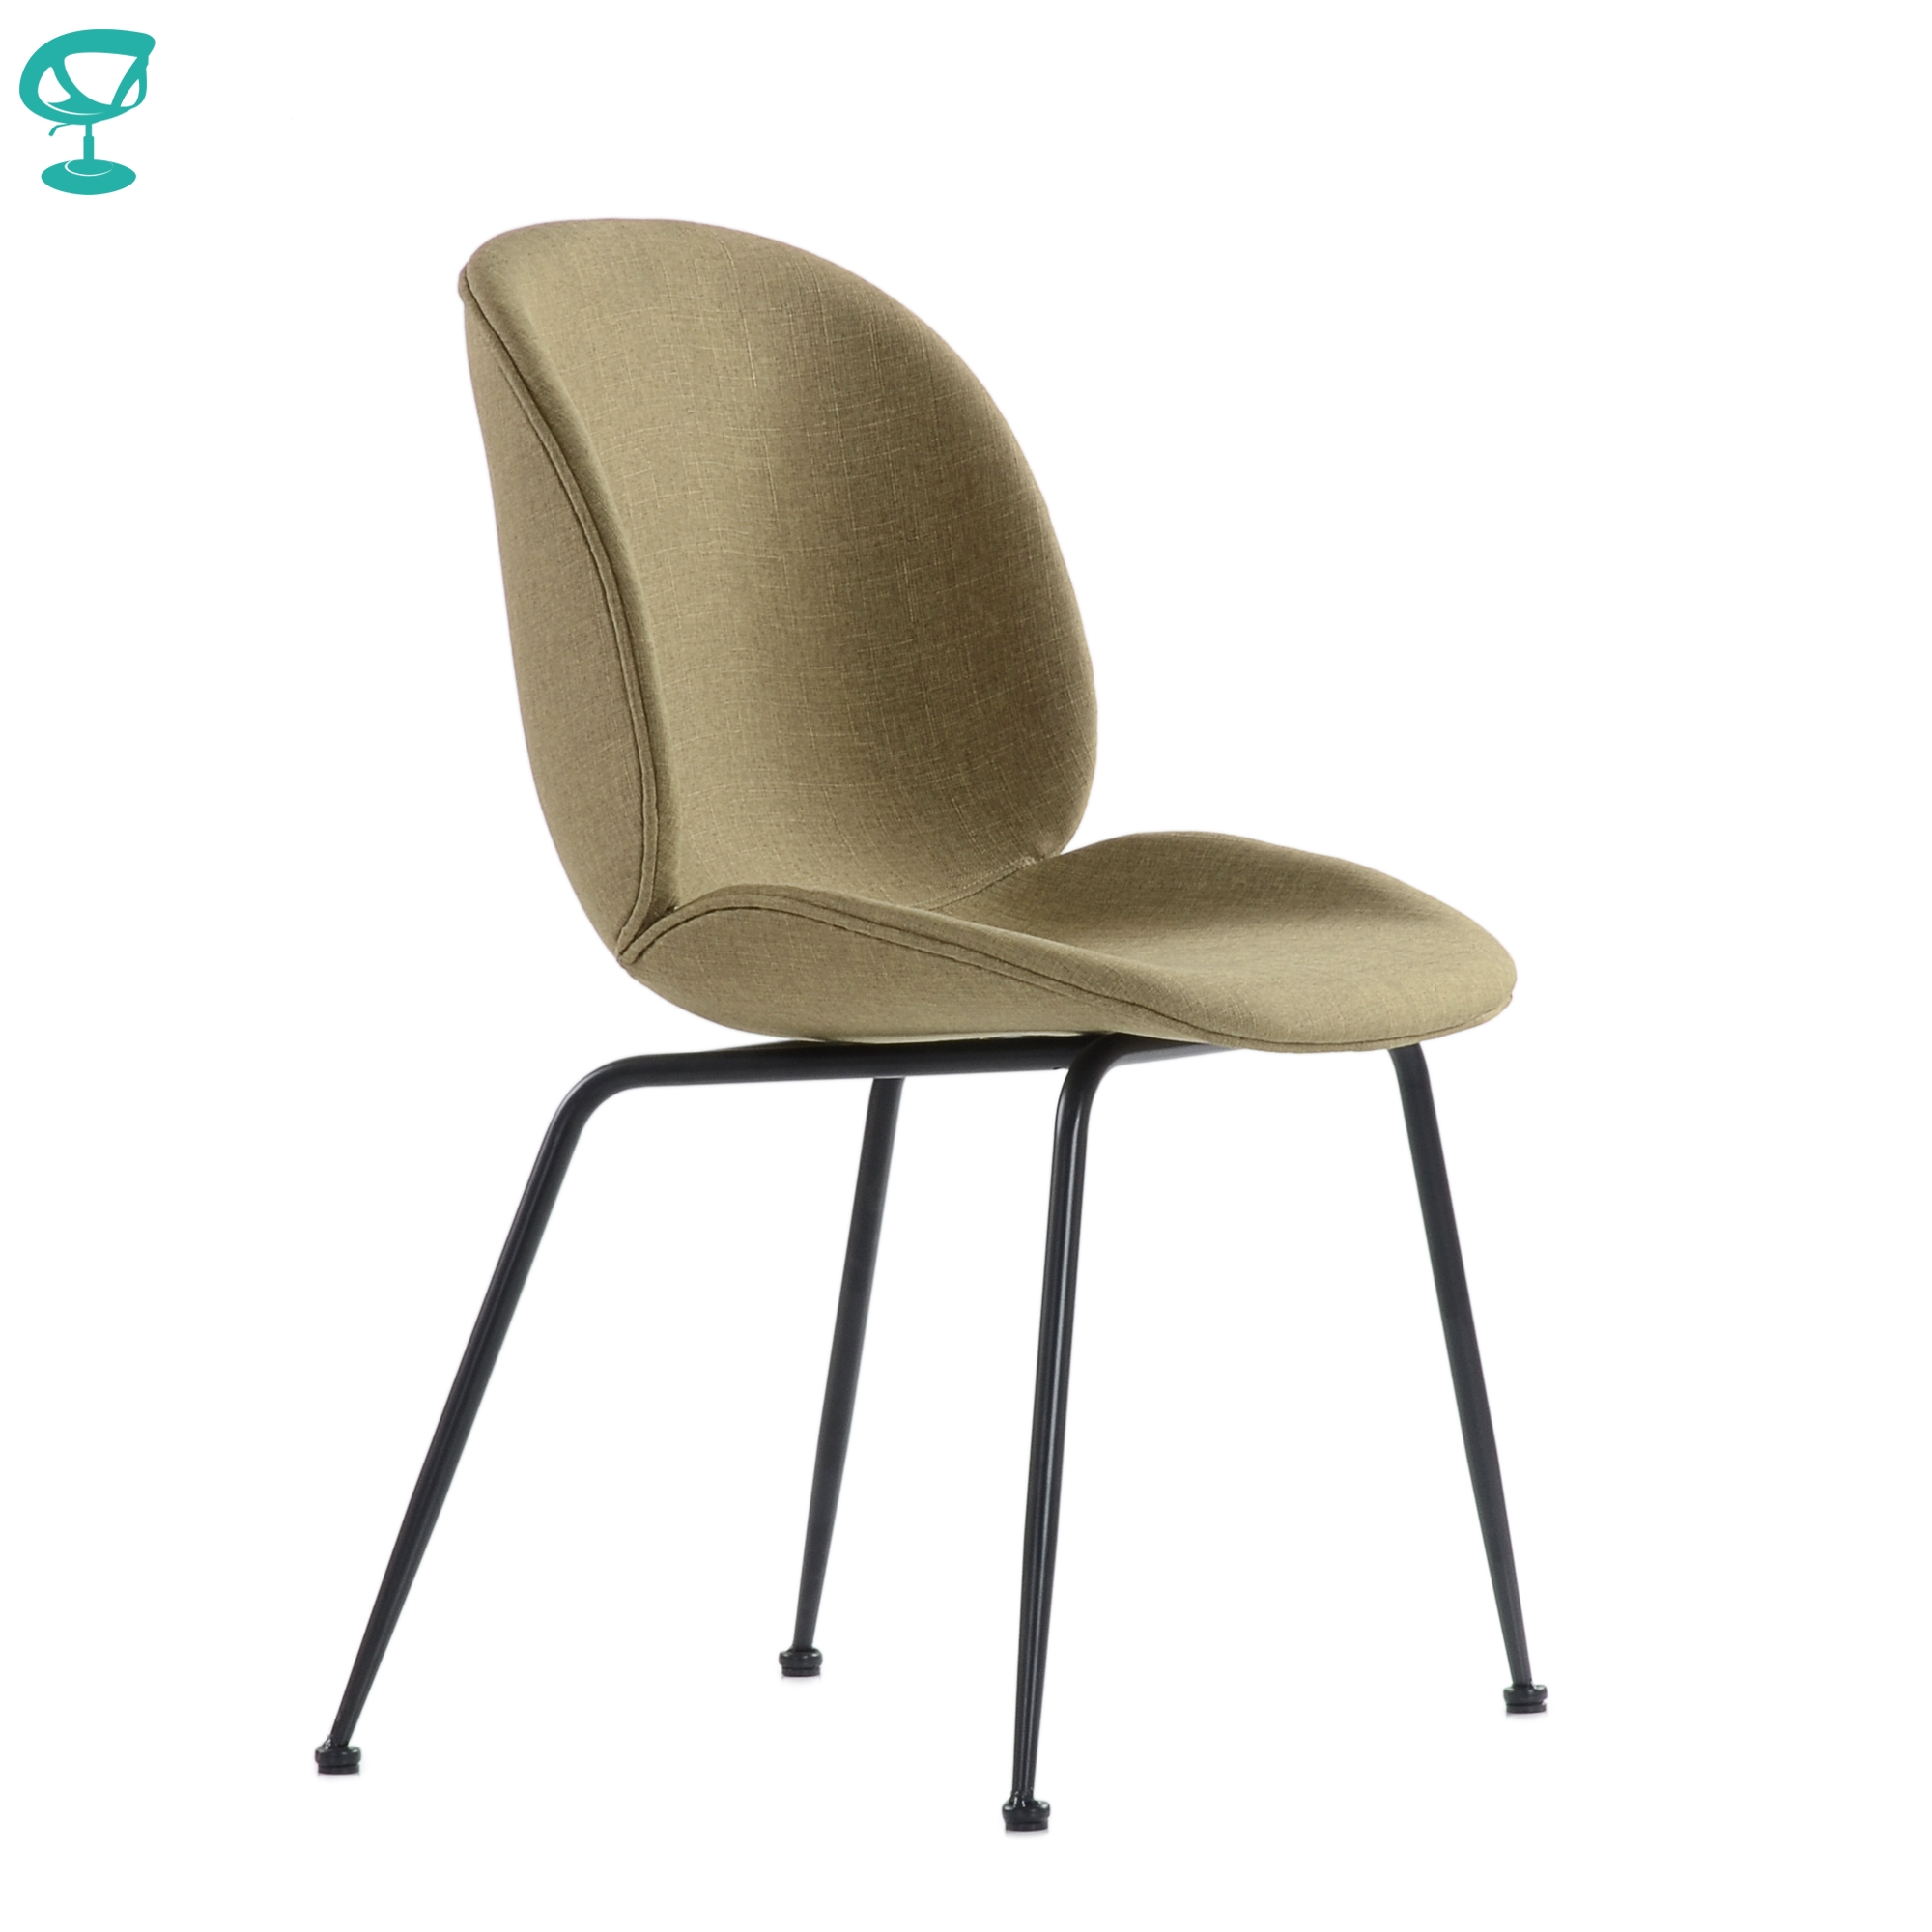 95741 Barneo S-17 Kitchen Chair On Metal Legs Seat Fabric Chair For Living Room Chair Dining Chair Furniture For Kitchen